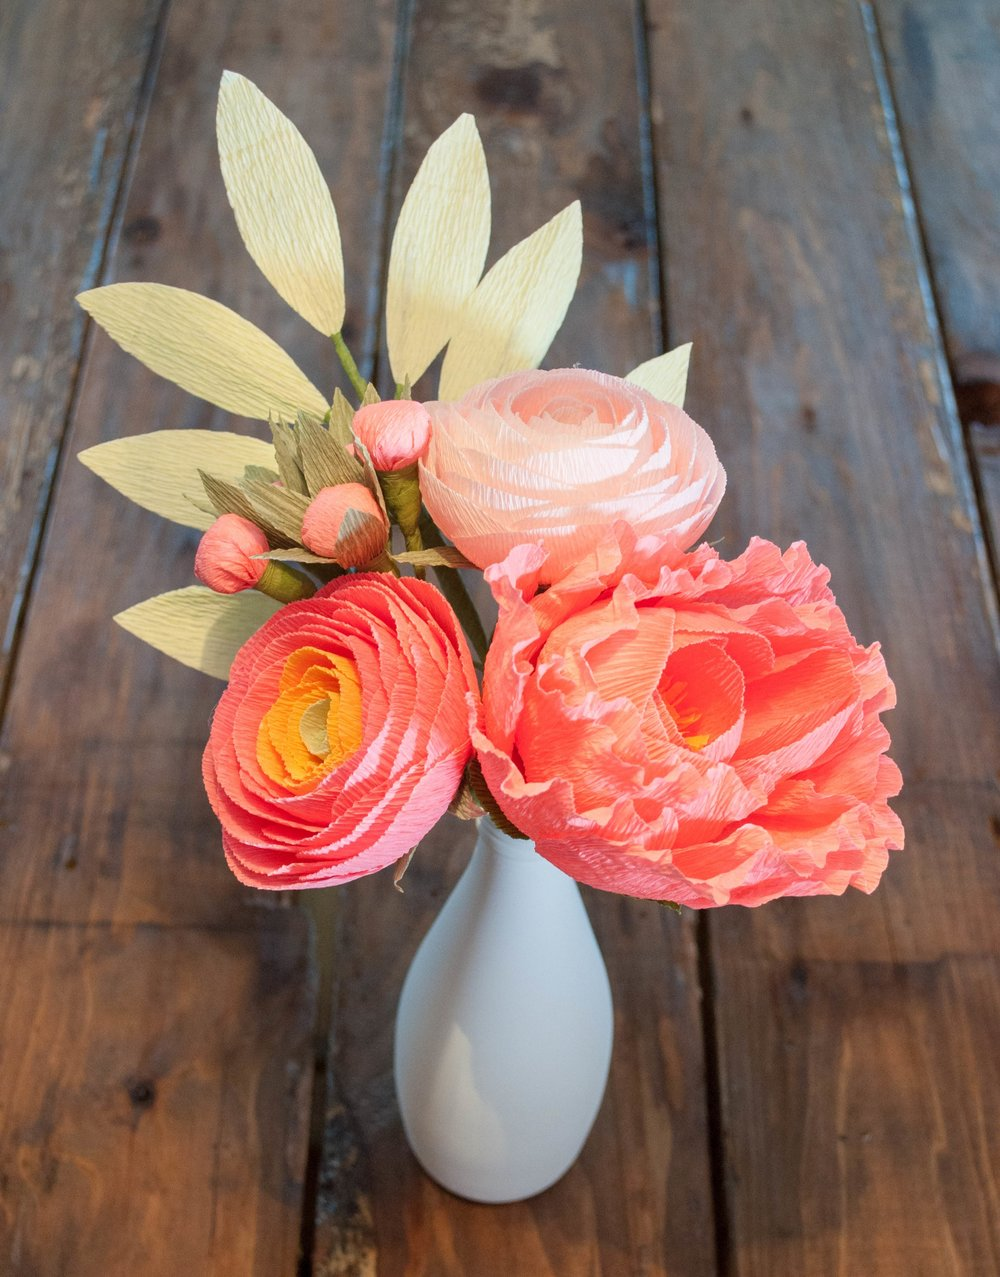 Build this 5-stem bouquet! Recipe: Salmon-gold ombre ranunculus, salmon peony, blush ranunculus, salmon berries, light green leaves.